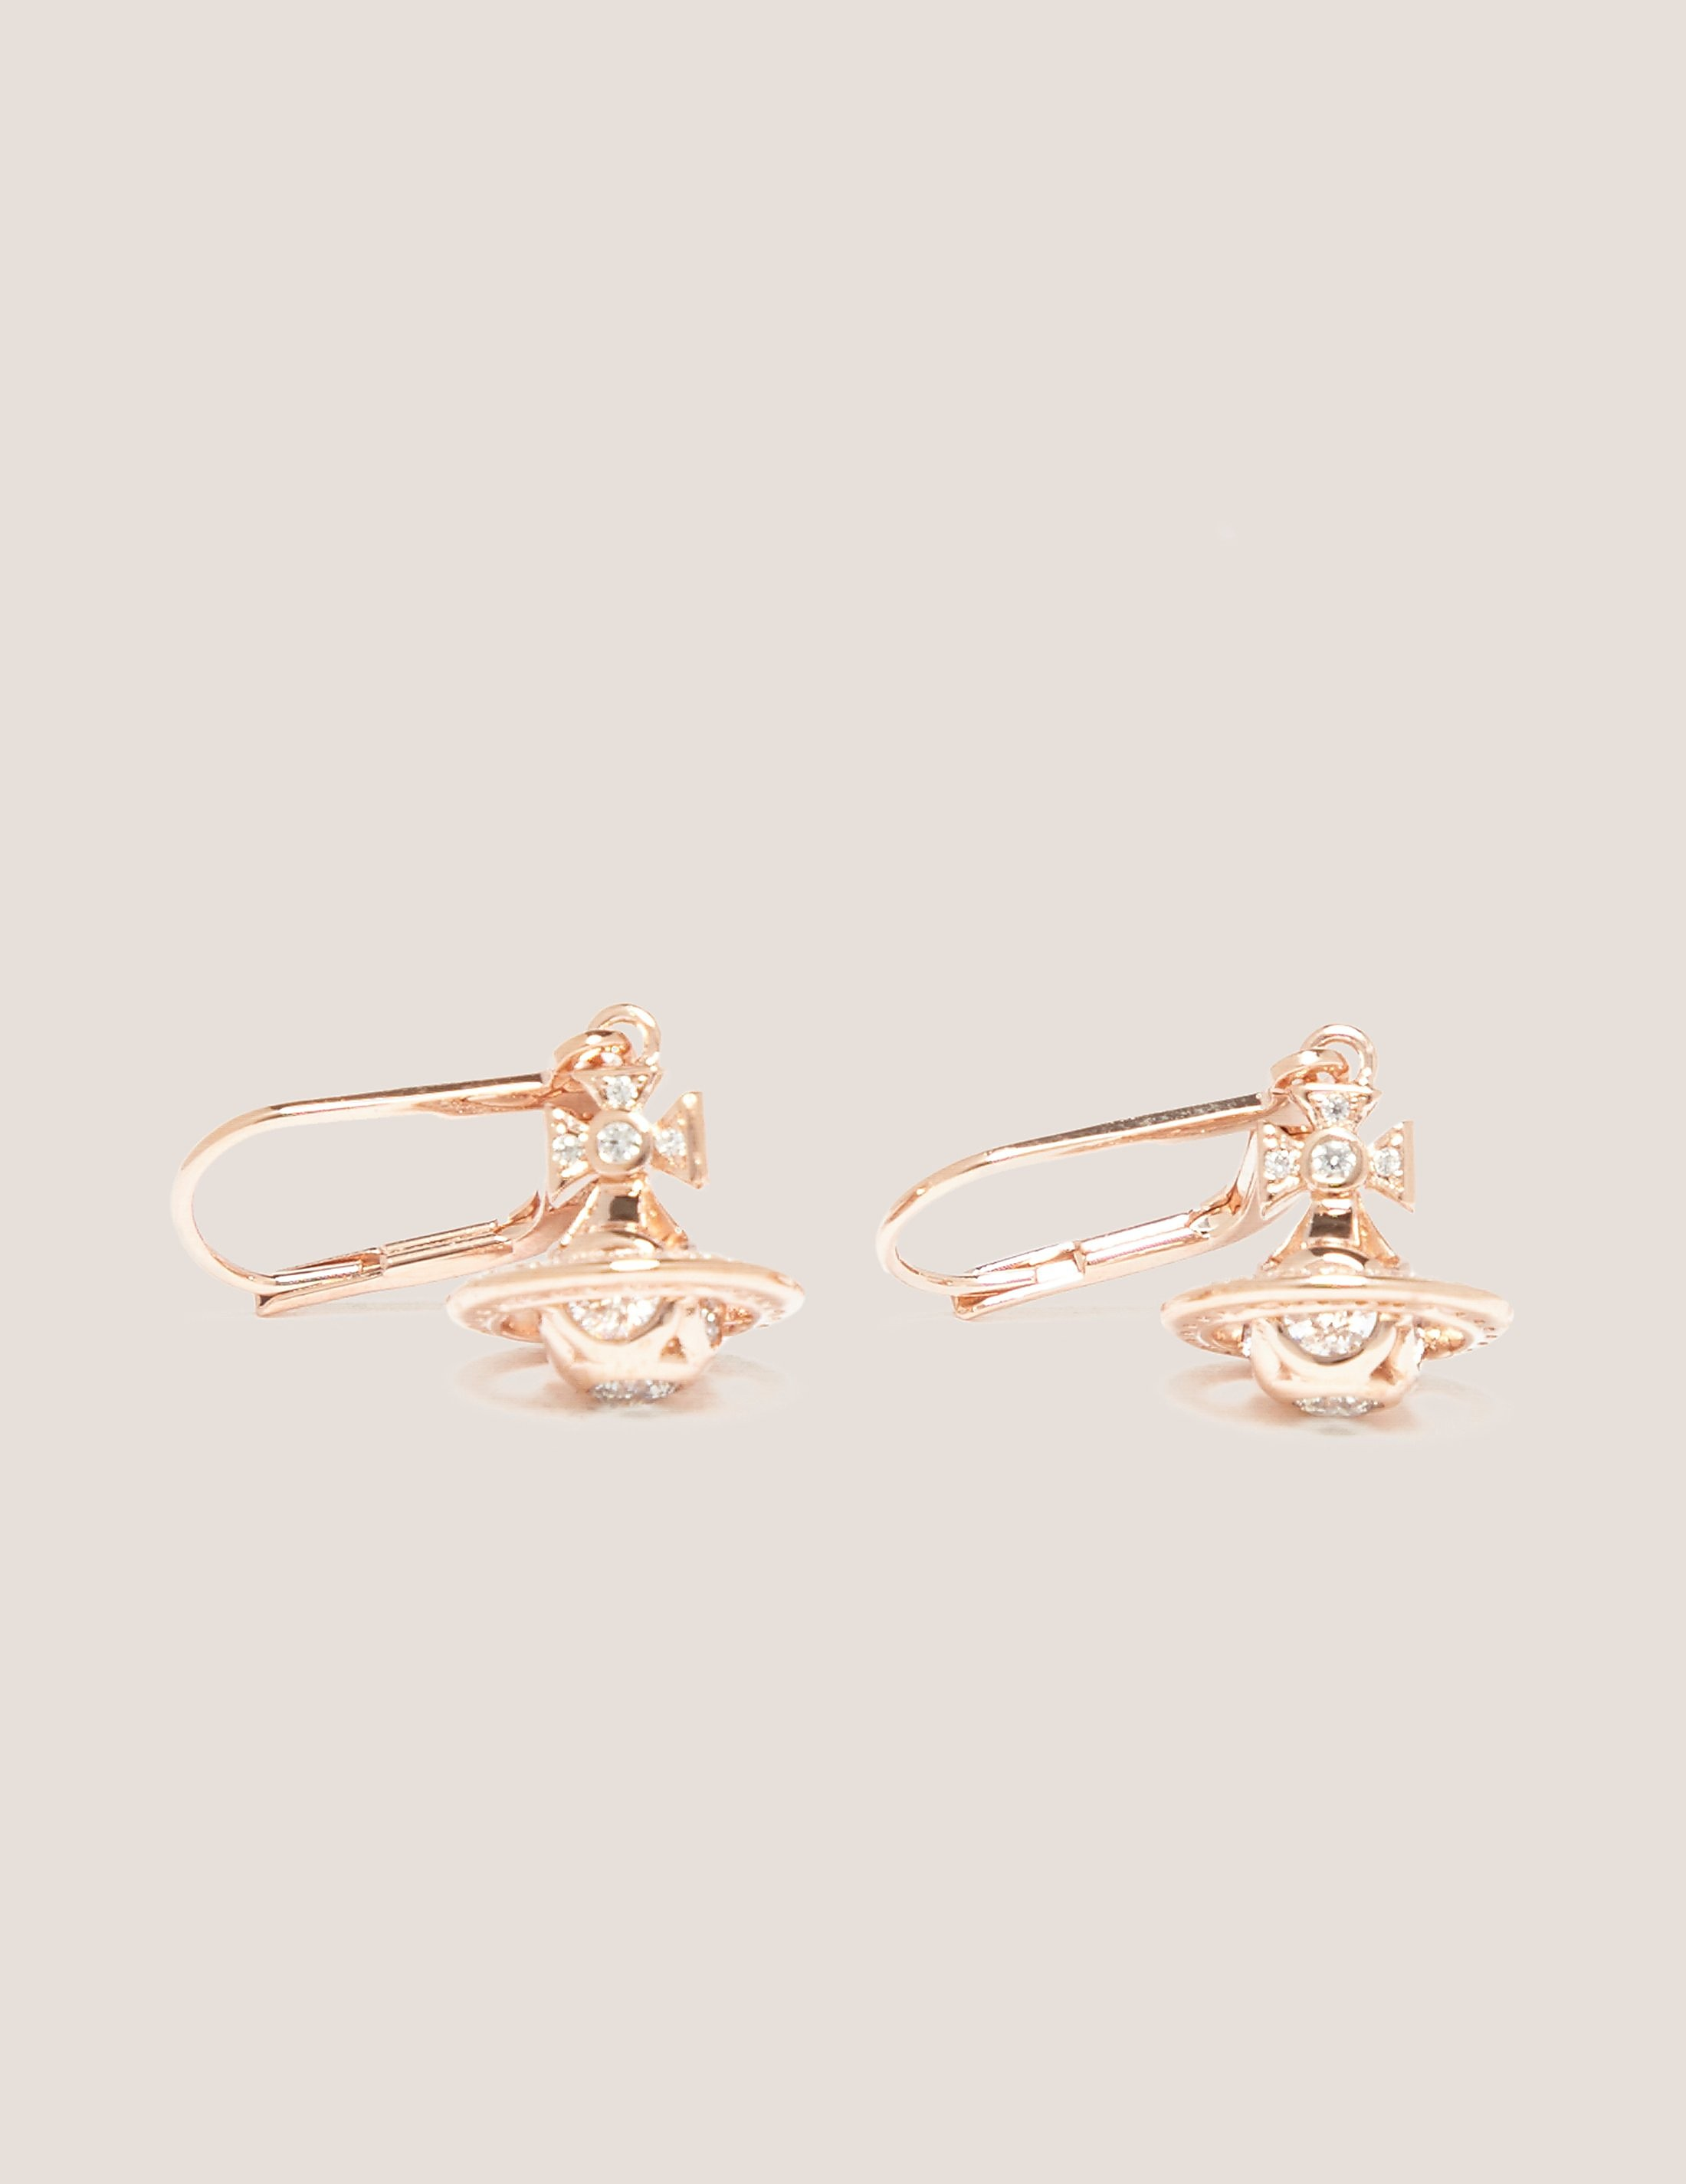 Vivienne Westwood Nicolette Earrings